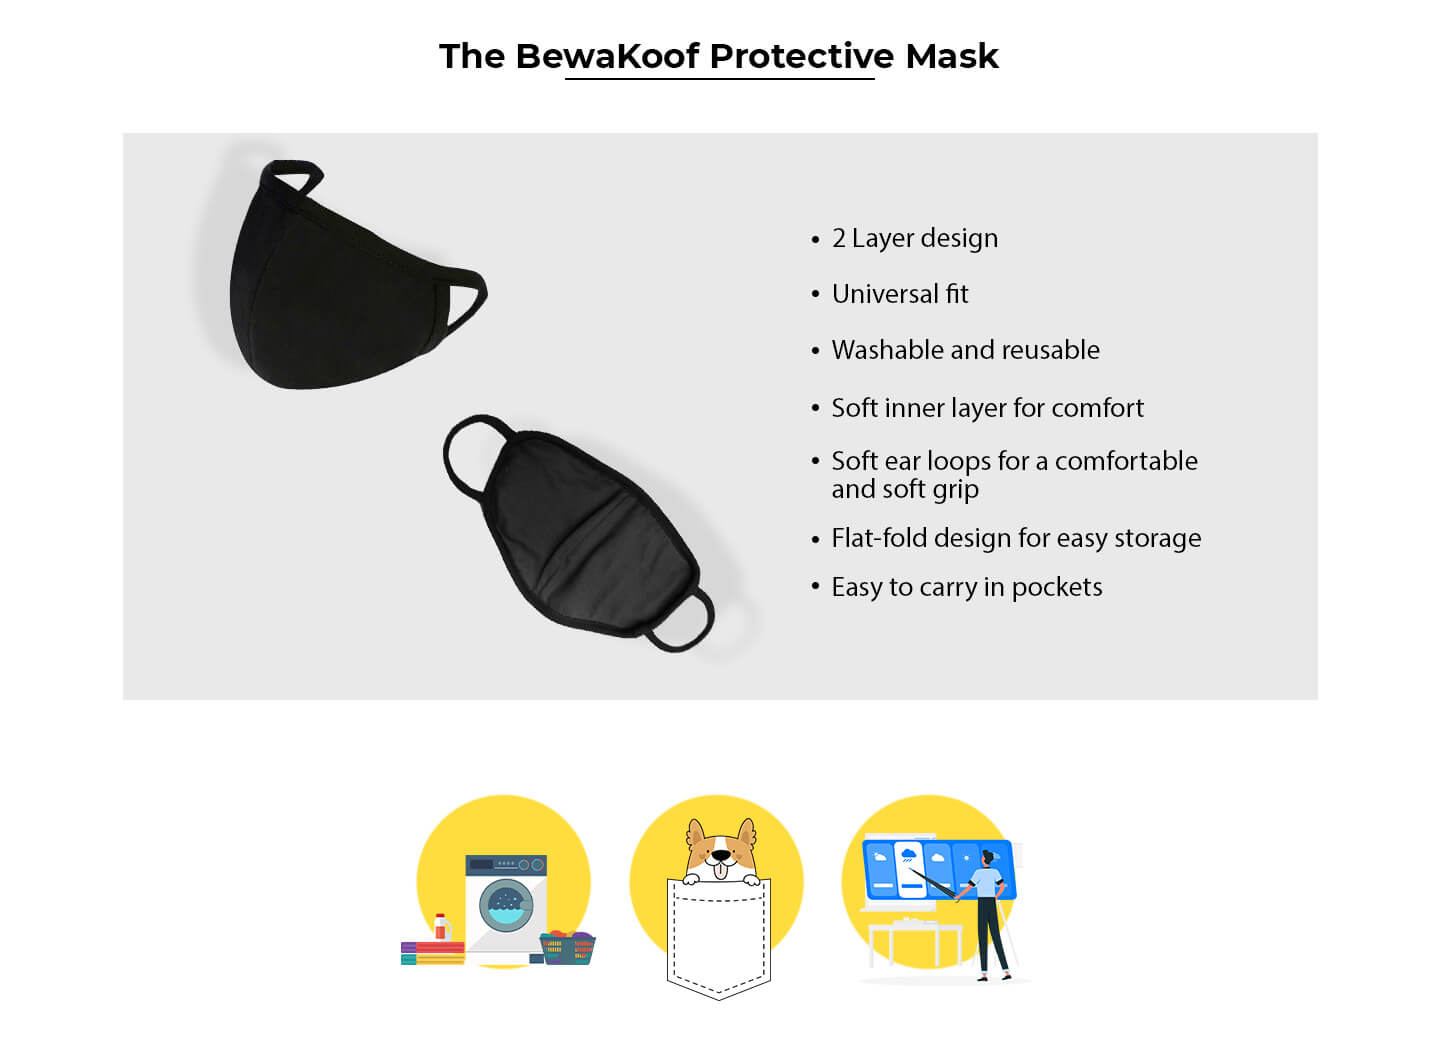 2-Layer Everyday Protective Mask - Pack of 3 (Polka dots, Bla Bla, We can) Description Image Website 0@Bewakoof.com